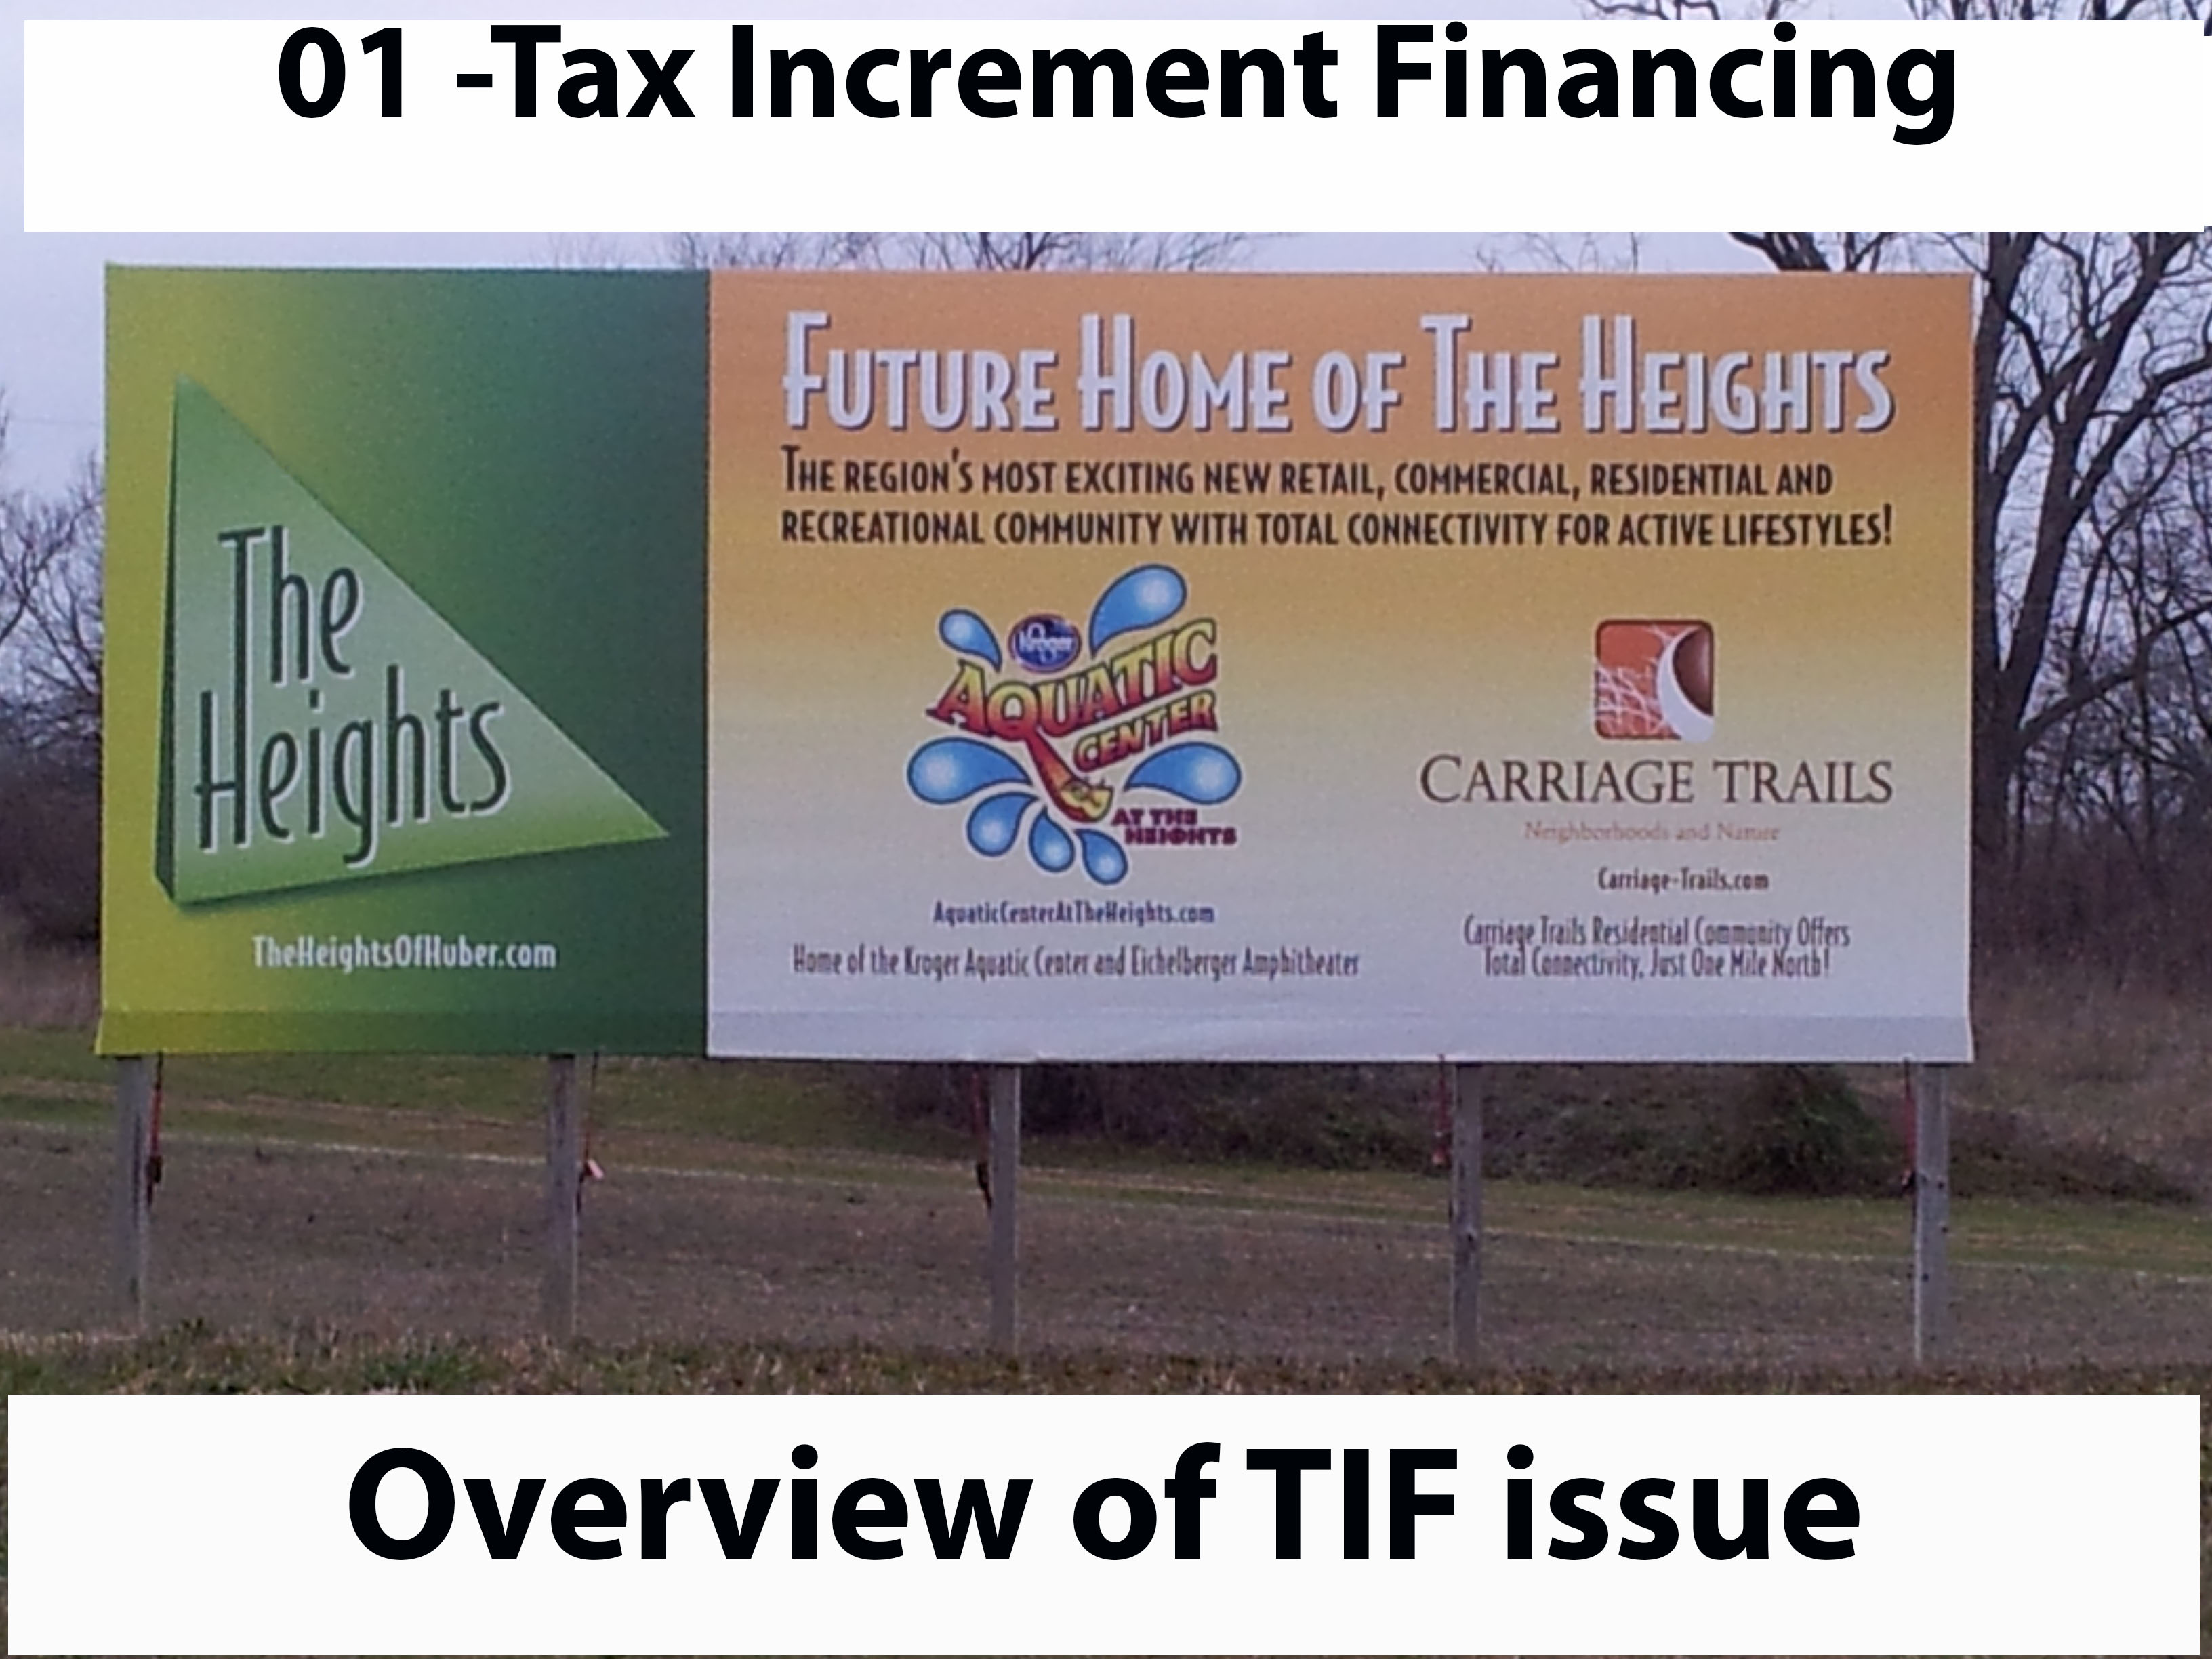 "Tax Increment Financing (TIF)<br />\n <br />\nThe City of Huber Heights has a number of TIF districts.  The basic idea of a TIF is to re-categorize money from property tax into ""special assessment"".  This re-categorization also changes the use of the money.  TIF is a complex issue which I have yet to find a good source to give us an accurate and complete description of how it works. <br />\n <br />\nThe follow on articles will present some of the references I could find about TIF regulations and presentations made to council.  At the end of this article you can find a list of website references.<br />\n <br />\nI planned to create this issue section ever since I started the website.  I had a conversation with a couple of school board members after the Dec 20th, 2012 school board meeting and came away with the impression they didn't have any better understanding of TIF districts than I did.  As a result I figured it was time for me to put together what I know.<br />\n <br />\nHere is an open items I hope get answered as part of the development of this issue.<br />\n \n<ul>\n	<li>When the public approves a new property tax such as the one we approved for the libraries how are the collections associated with this levy parceled out to government agencies?  We know that one of the reasons the city creates TIF districts is because it allows them to funnel some of the money voters approved for one purpose into TIF funds but I'm not sure about the specific details.</li>\n</ul>\nHere is a question that I wondered about when I started this article.  I have found the Ohio Code (<a href=""http://codes.ohio.gov/orc/5709.82"" target=""_blank"">5709.82</a>) that addressess it.\n\n<ul>\n	<li>This evening I just read the Ohio State paper on TIF districts.  In that paper it tells us that for municipalities collecting an income tax the city must execute a revenue-sharing agreement ordinance with affected school districts in cases where the new investment results in annual payroll for new employees of $1,000,000 or more within six months of adopting the ordinance.  I wonder if the city and school have such a revenue sharing agreement. -  <span style=""color: rgb(128, 0, 128);"">ORC 5709.82 tells us in sectiion (C) that if the city and the school made a revenue sharing agreement in section (B) then the income tax revenue sharing does not apply. </span></li>\n</ul>\n <br />\nOf course the first paragraph of this article is my characterization of TIF.  Here is a <a href=""http://development.ohio.gov/files/bs/TIF_IncentiveDistrictsSummary.pdf"" target=""_blank"">friendlier characterization</a> as found on the State of Ohio's website:<br />\n <br />\n""Tax Increment Financing (TIF) is an economic development mechanism available to local governments in Ohio to finance public infrastructure improvements and, in certain circumstances, residential rehabilitation. A TIF works by locking in the taxable worth of real property at the value it holds at the time the authorizing legislation was approved. Payments derived from the increased assessed value of any improvement to real property beyond that amount are directed towards a separate fund to finance the construction of public infrastructure defined within the TIF legislation.""<br />\n <br />\nWeb References for TIF Financing:<br />\n <br />\n<a href=""http://development.ohio.gov/bs/bs_tif.htm"" target=""_blank"">State of Ohio Development Services Agency, information on Tax Increment Financing</a>.  This site contains an overview definition and contains links to white papers on <a href=""http://development.ohio.gov/files/bs/TIF_Summary.pdf"" target=""_blank"">general purpose/parcel TIFs</a> and <a href=""http://development.ohio.gov/files/bs/TIF_IncentiveDistrictsSummary.pdf"" target=""_blank"">Incentive distrct TIFs</a>.  It also has a link so you can find <a href=""http://development.ohio.gov/OTEISearch/tif/default.aspx"" target=""_blank"">existing TIF projects</a><br />\n <br />\n <br />\n<a href=""http://codes.ohio.gov/orc/5709.40"" target=""_blank"">Ohio Revised Code 5709.40</a>.  When the City of Huber Heights sponsored TIF legislation on Dec 20, 2012 they reference ORC 5709.40 through 5709.43. <br />\n<br />\nOhio Revised Code <a href=""http://codes.ohio.gov/orc/5709.82"" target=""_blank"">5709.82 </a>Compensating school district for revenues lost due to tax exemptions <br />\n <br />\nOhio State University Extension Fact Sheet - <a href=""http://ohioline.osu.edu/cd-fact/1559.html"" target=""_blank"">Ohio's Tax Increment Financing Program</a><br />\n <br />\n <br />\n<a href=""http://agendaquick.hhoh.org/docs/2011/PC/20110412_320/320_4.12.11.doc"" target=""_blank"">Huber Heights Planning Commission April 12, 2011 Minutes</a>.  Starting the last paragraph of page 4, Steve Stanley explains TIF as it relates to the Huber Heights Recreational facility planning.    <br />\n<br />\n"